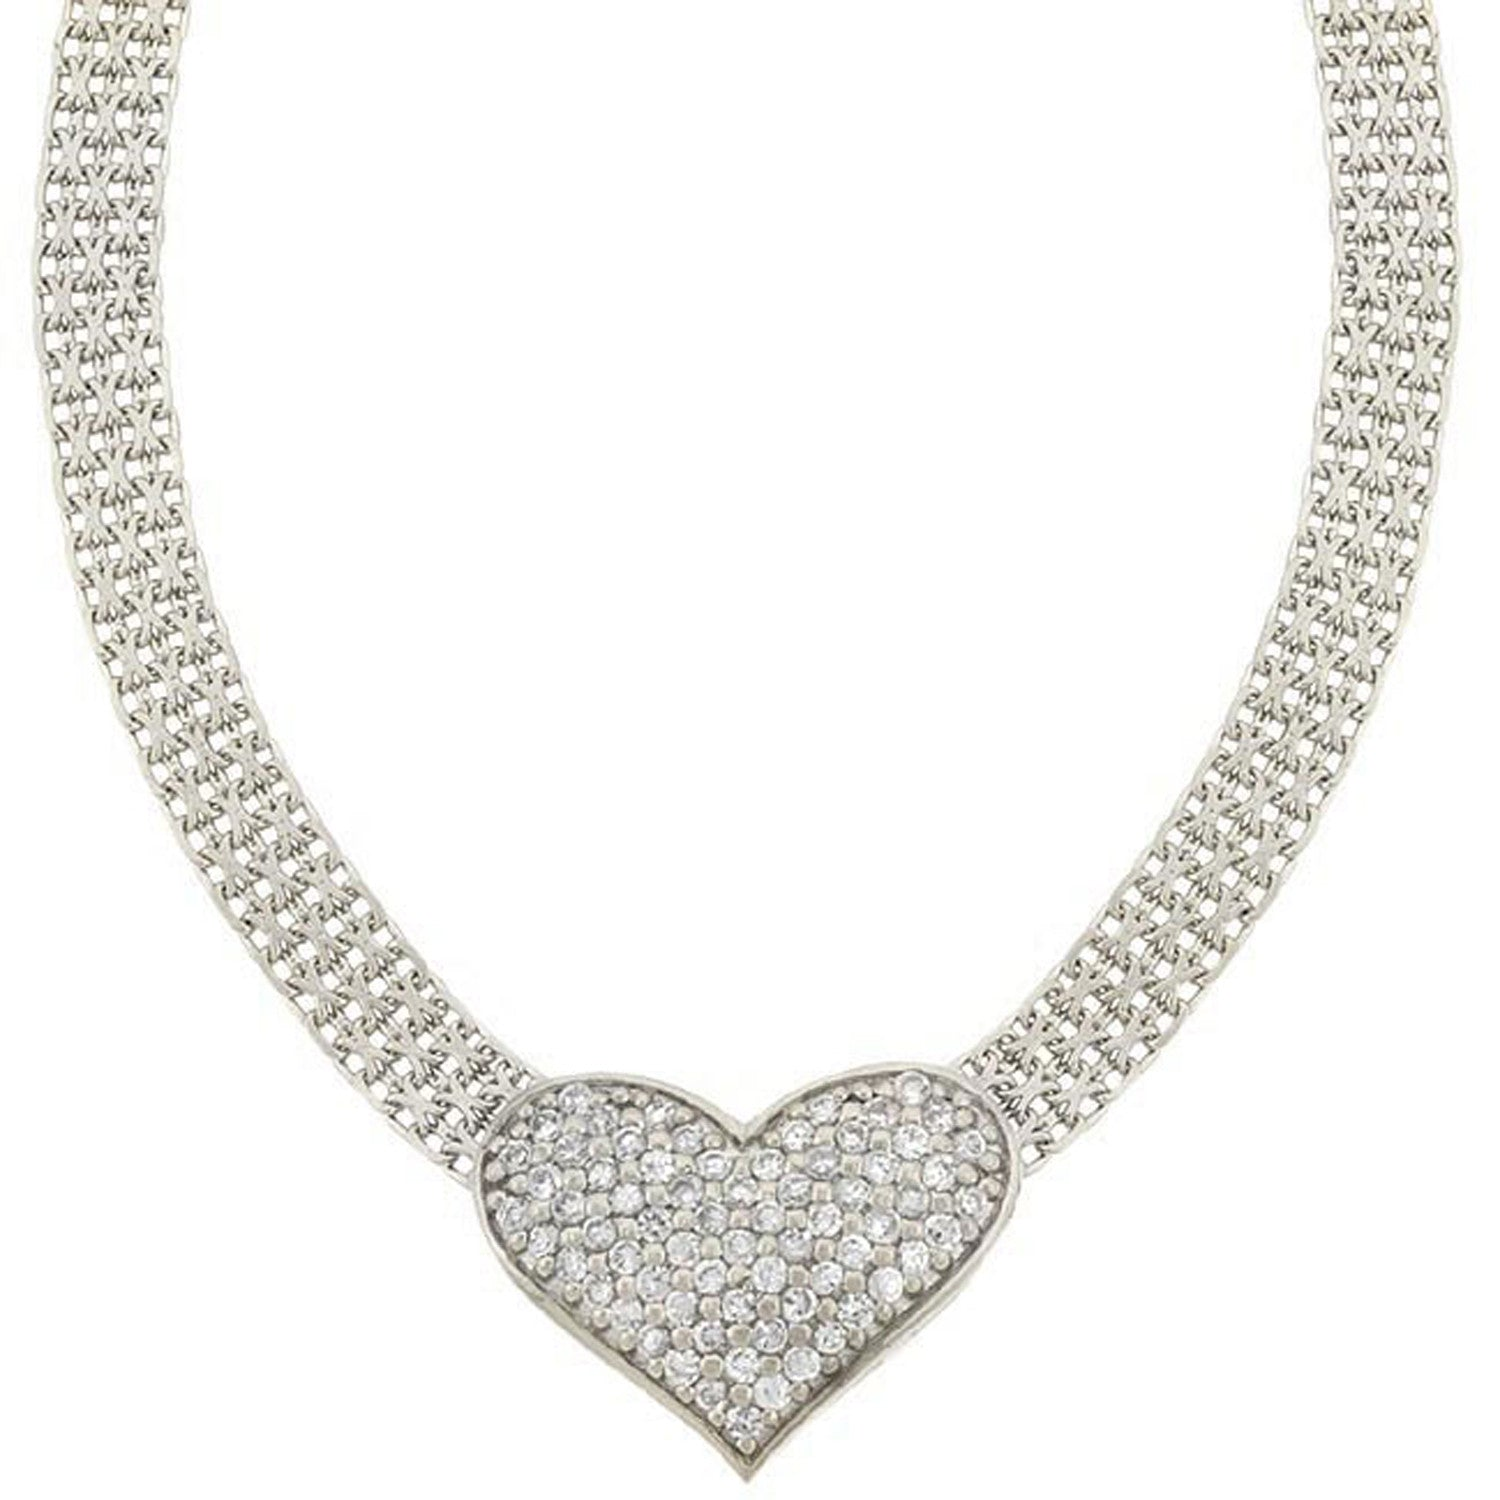 Heart Mesh Sterling Silver Necklace With Cubic Zirconia Accents